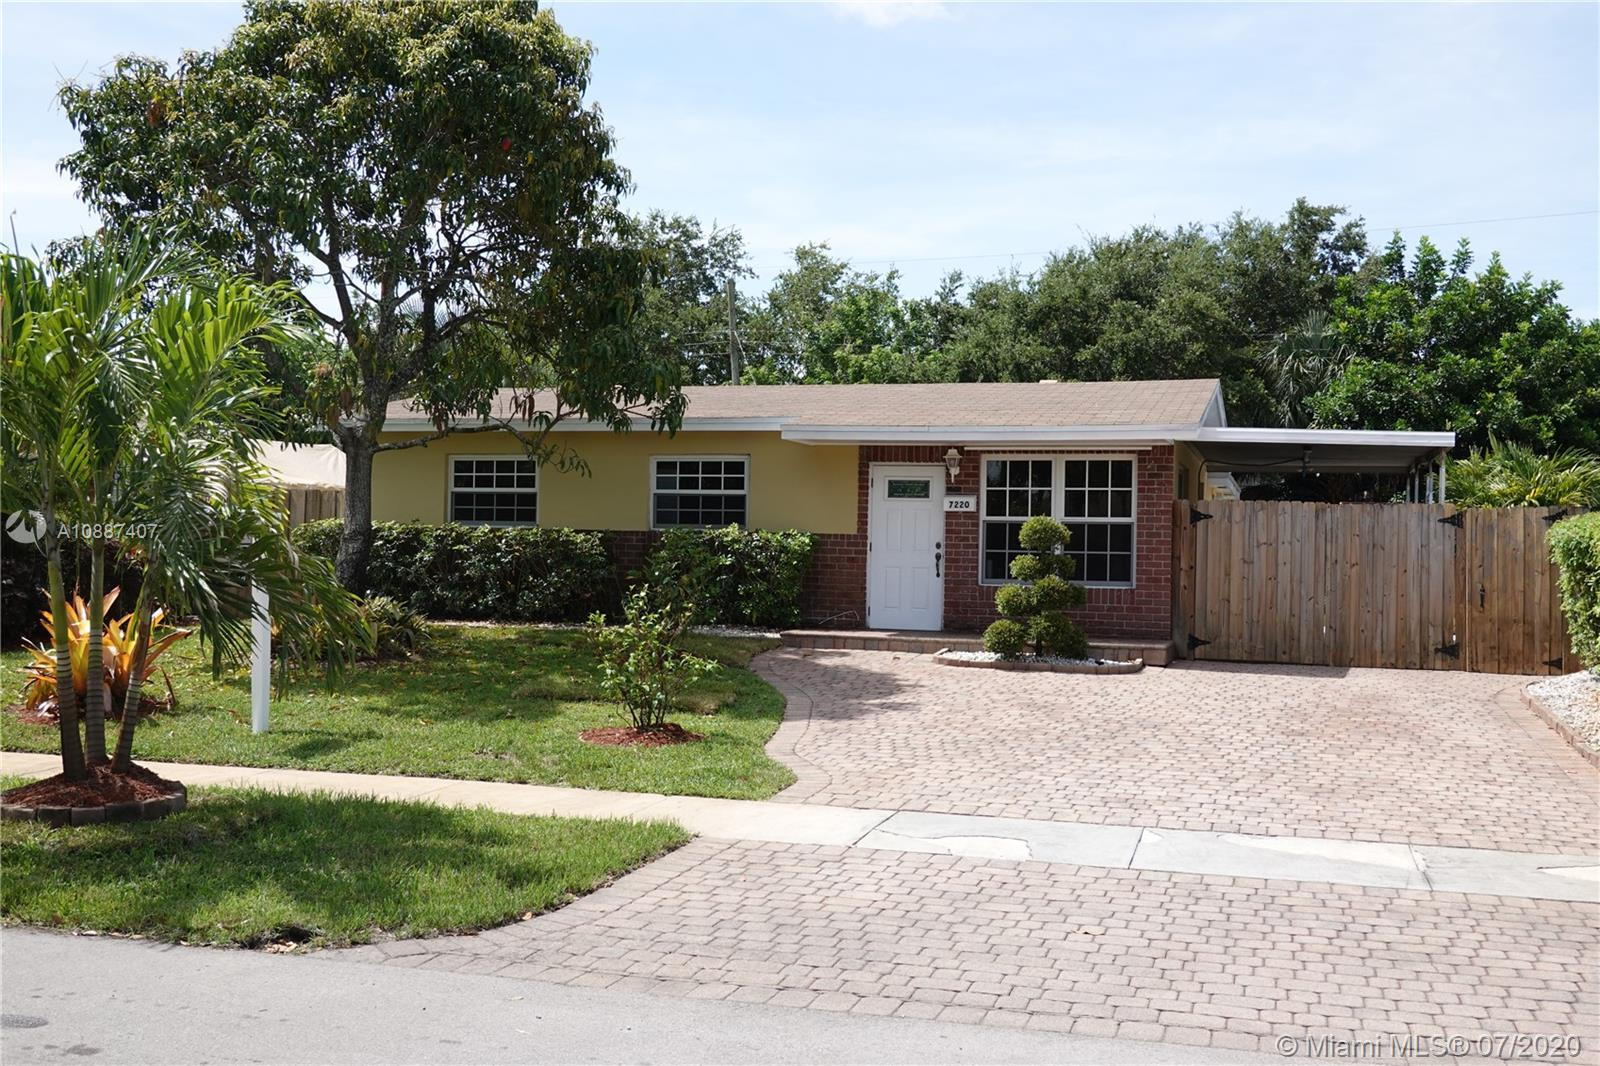 THIS CLASSIC STARTER HOME BOASTS WITH 4 BEDROOMS AND 2 BATHS. OWNER HAS TAKEN PRIDE IN CARING FOR TH